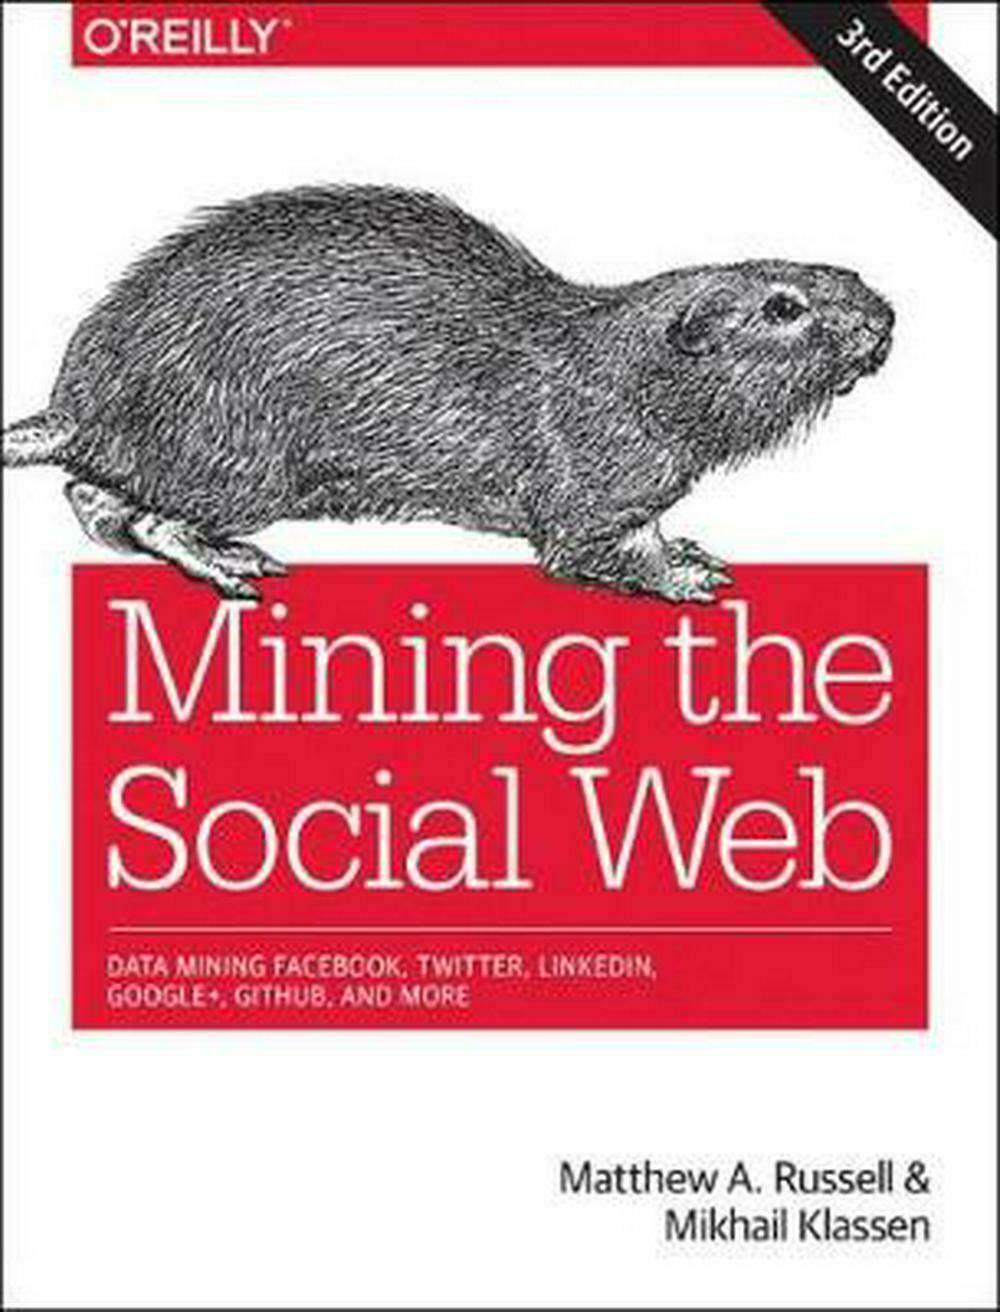 Mining the Social Web, 3e by Matthew A. Russell Paperback Book Free Shipping! |